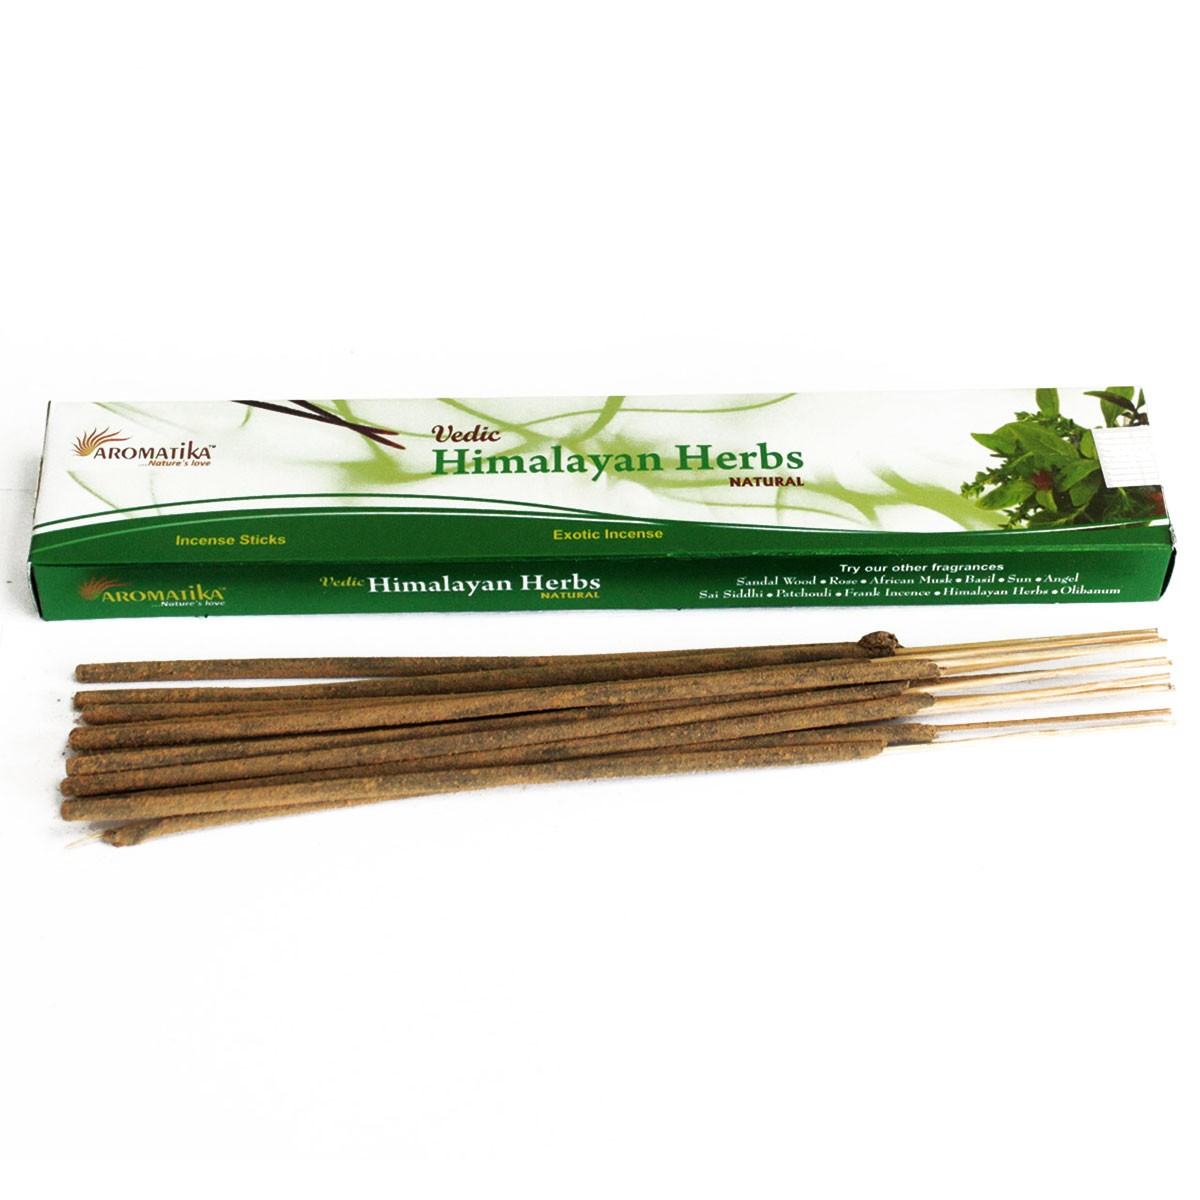 Vedic Incense Sticks Himalayan herbs